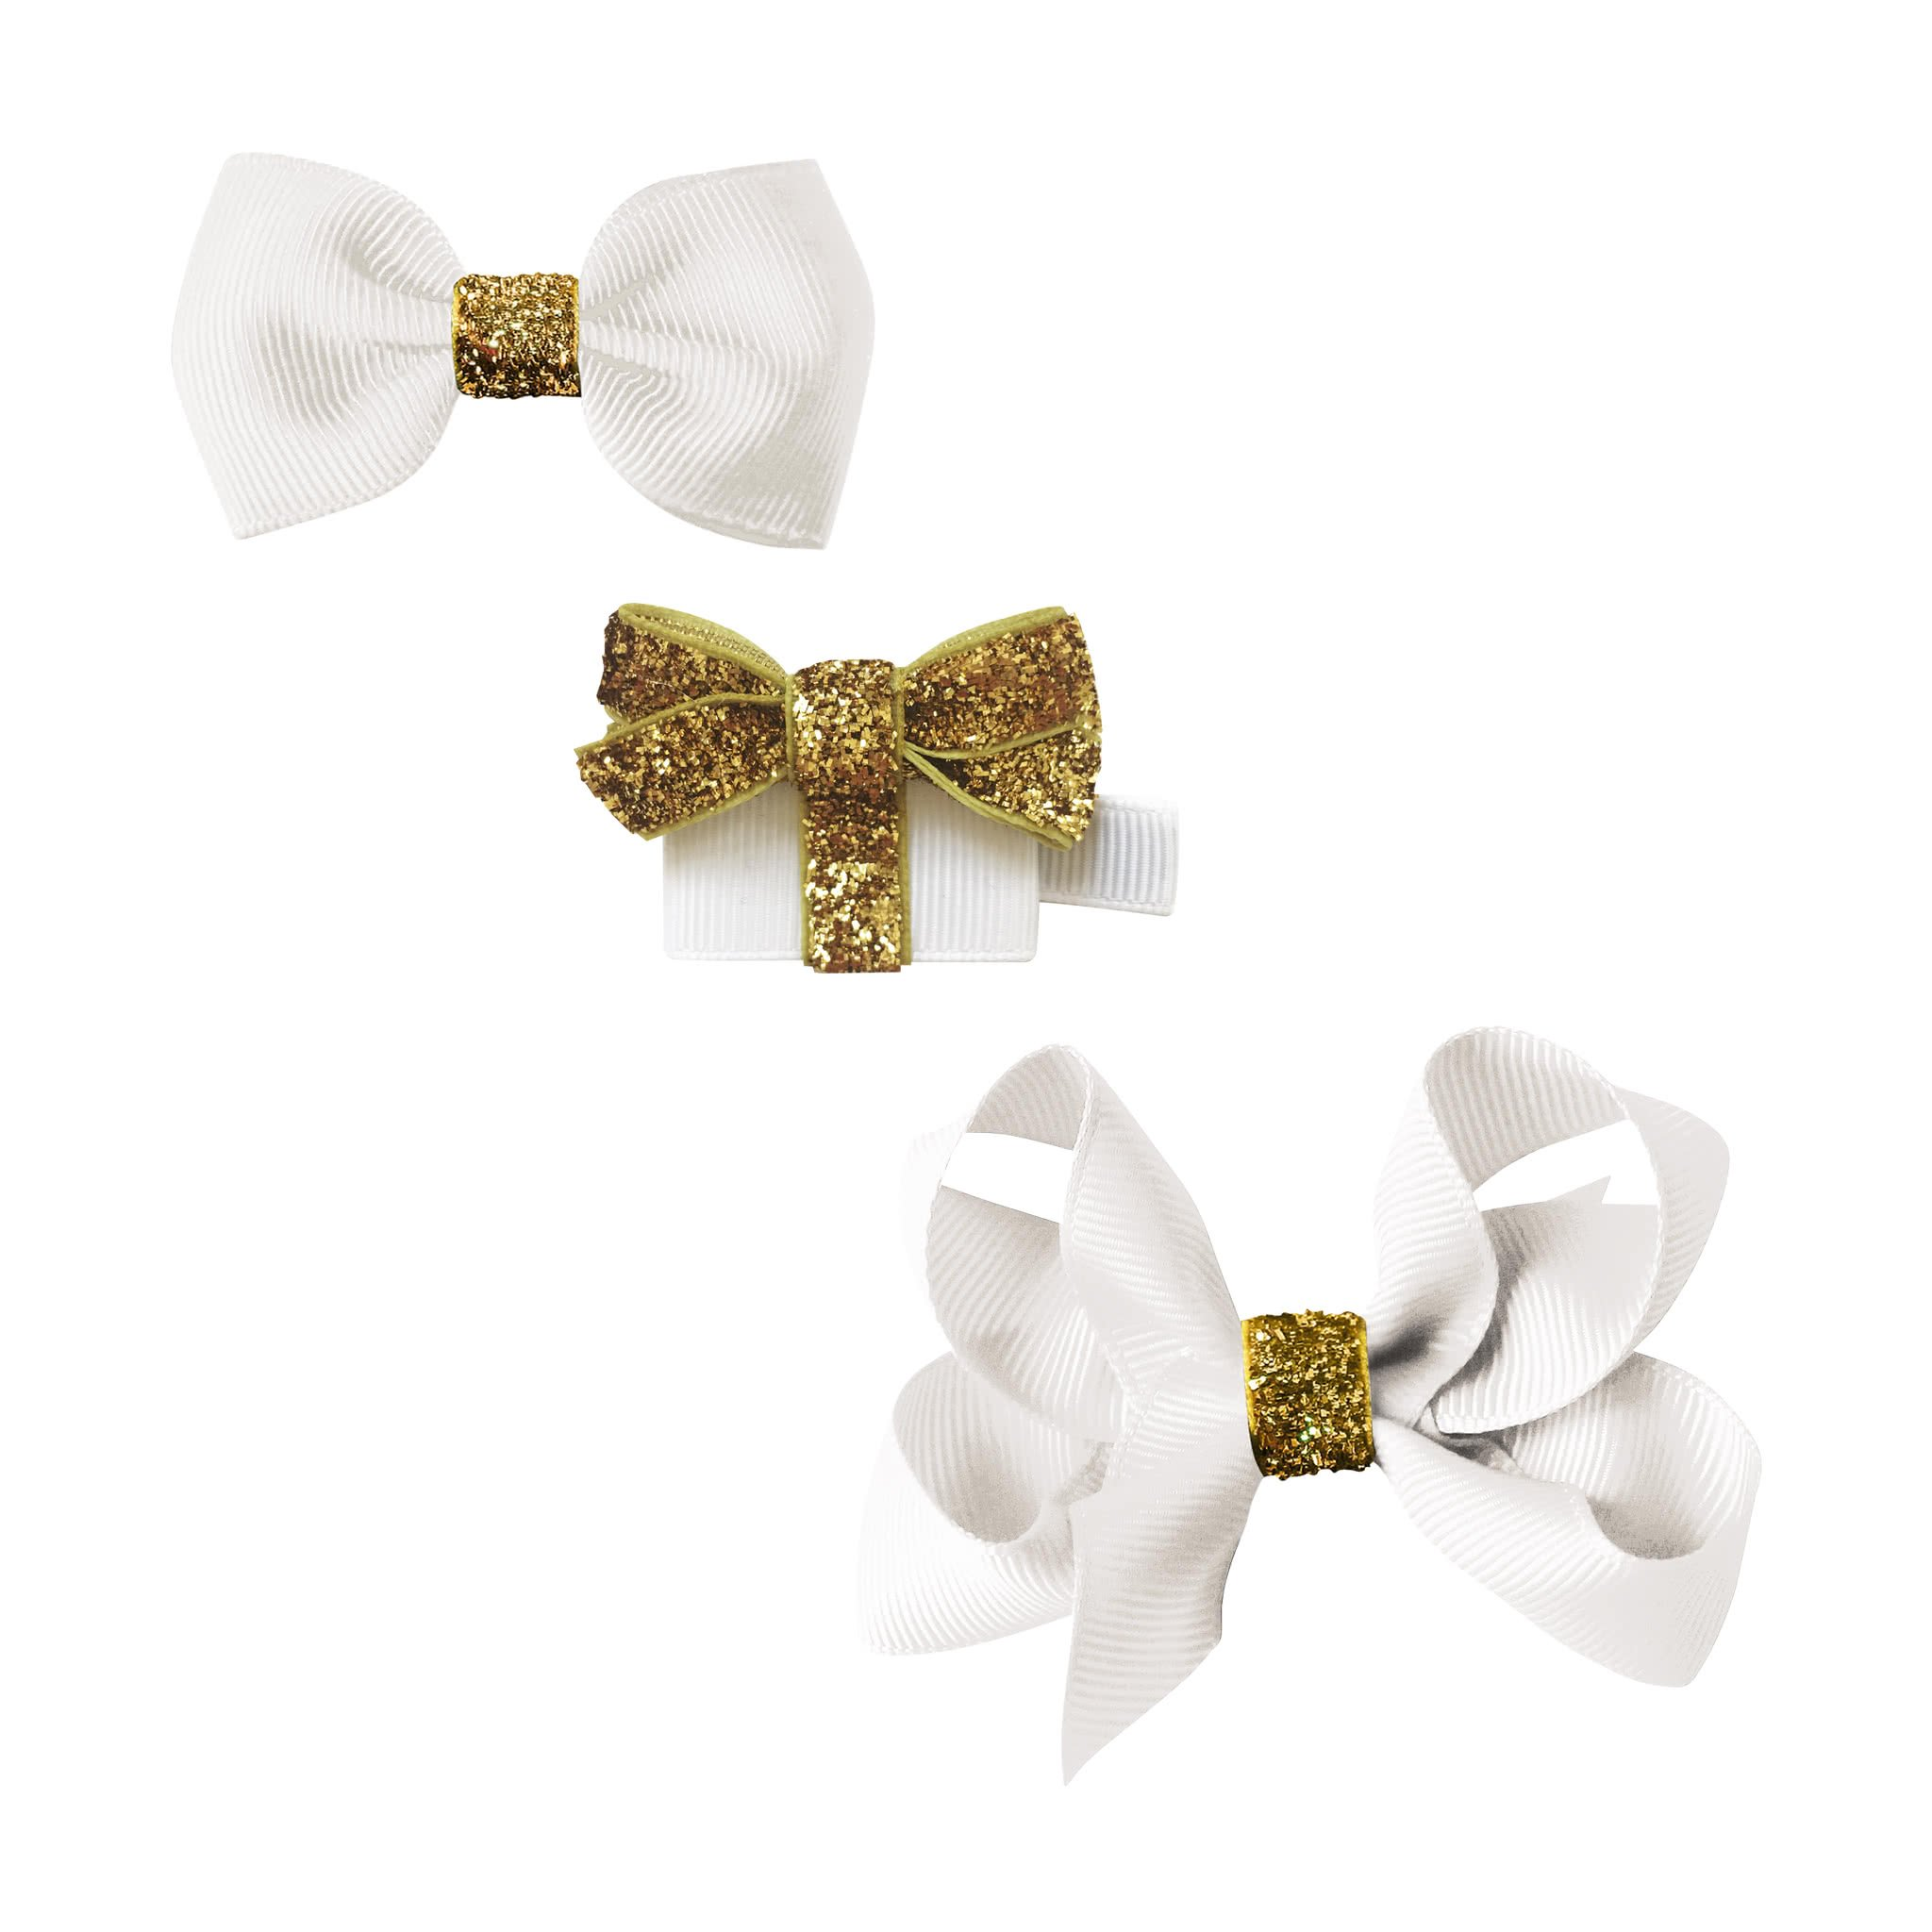 Image of Milledeux® Classic Christmas gift set - a Gift and 2 bows - White / gold